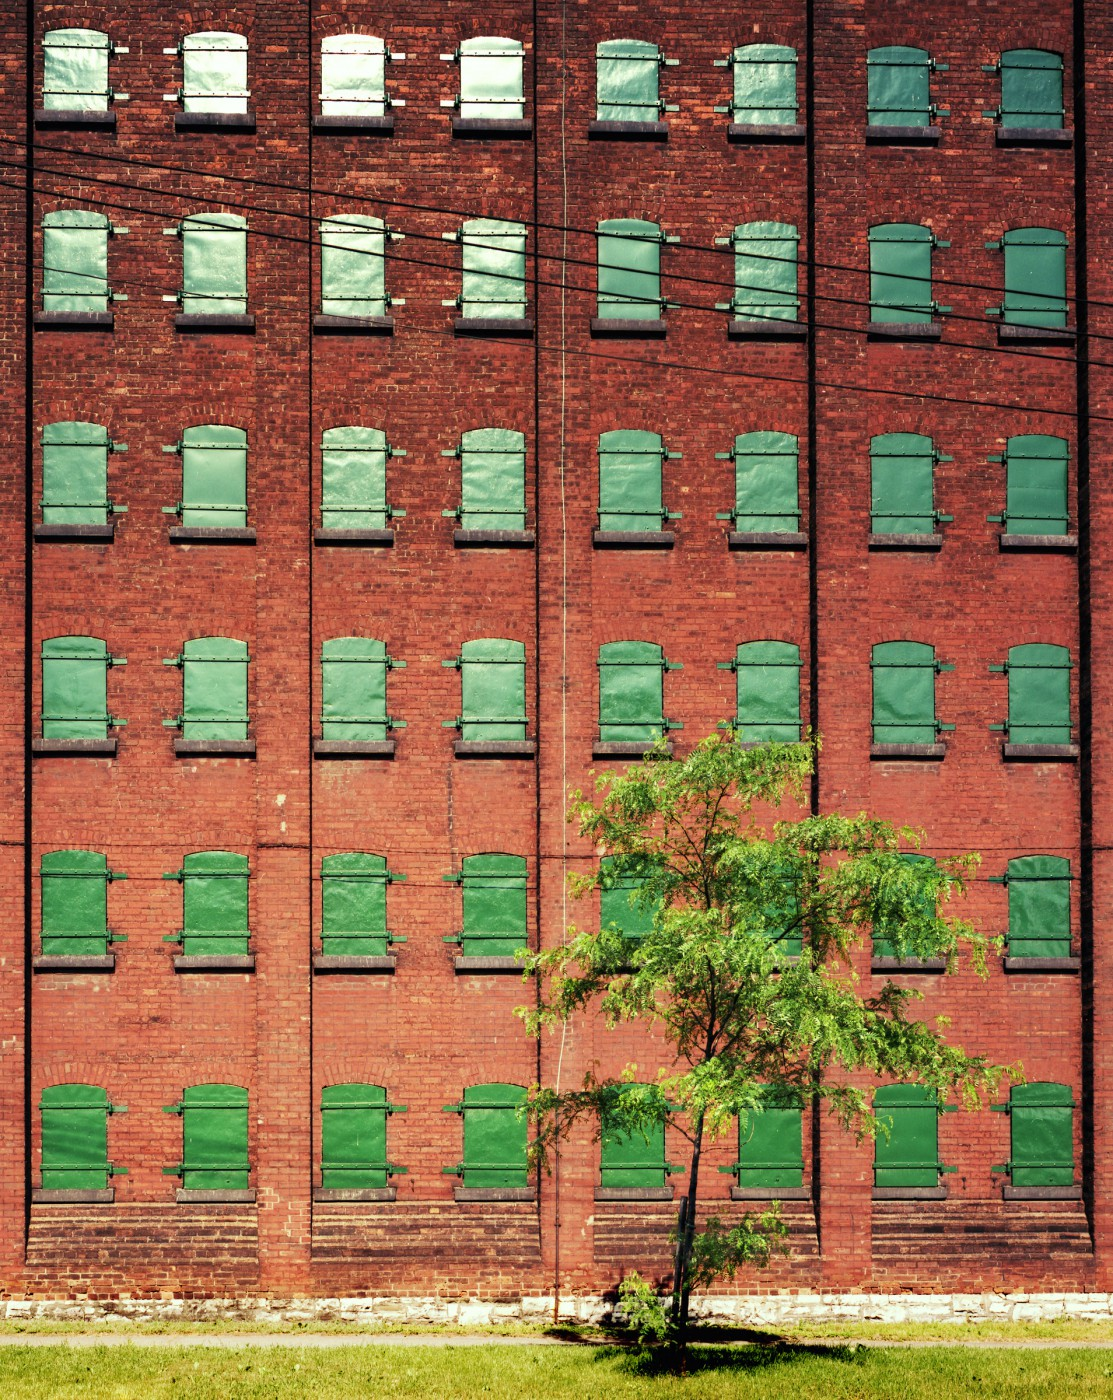 David Kaufman, </span><span><em>Gooderham Worts Storage Warehouse, 1984</em>, </span><span>Chromogenic print on polyester base, 23